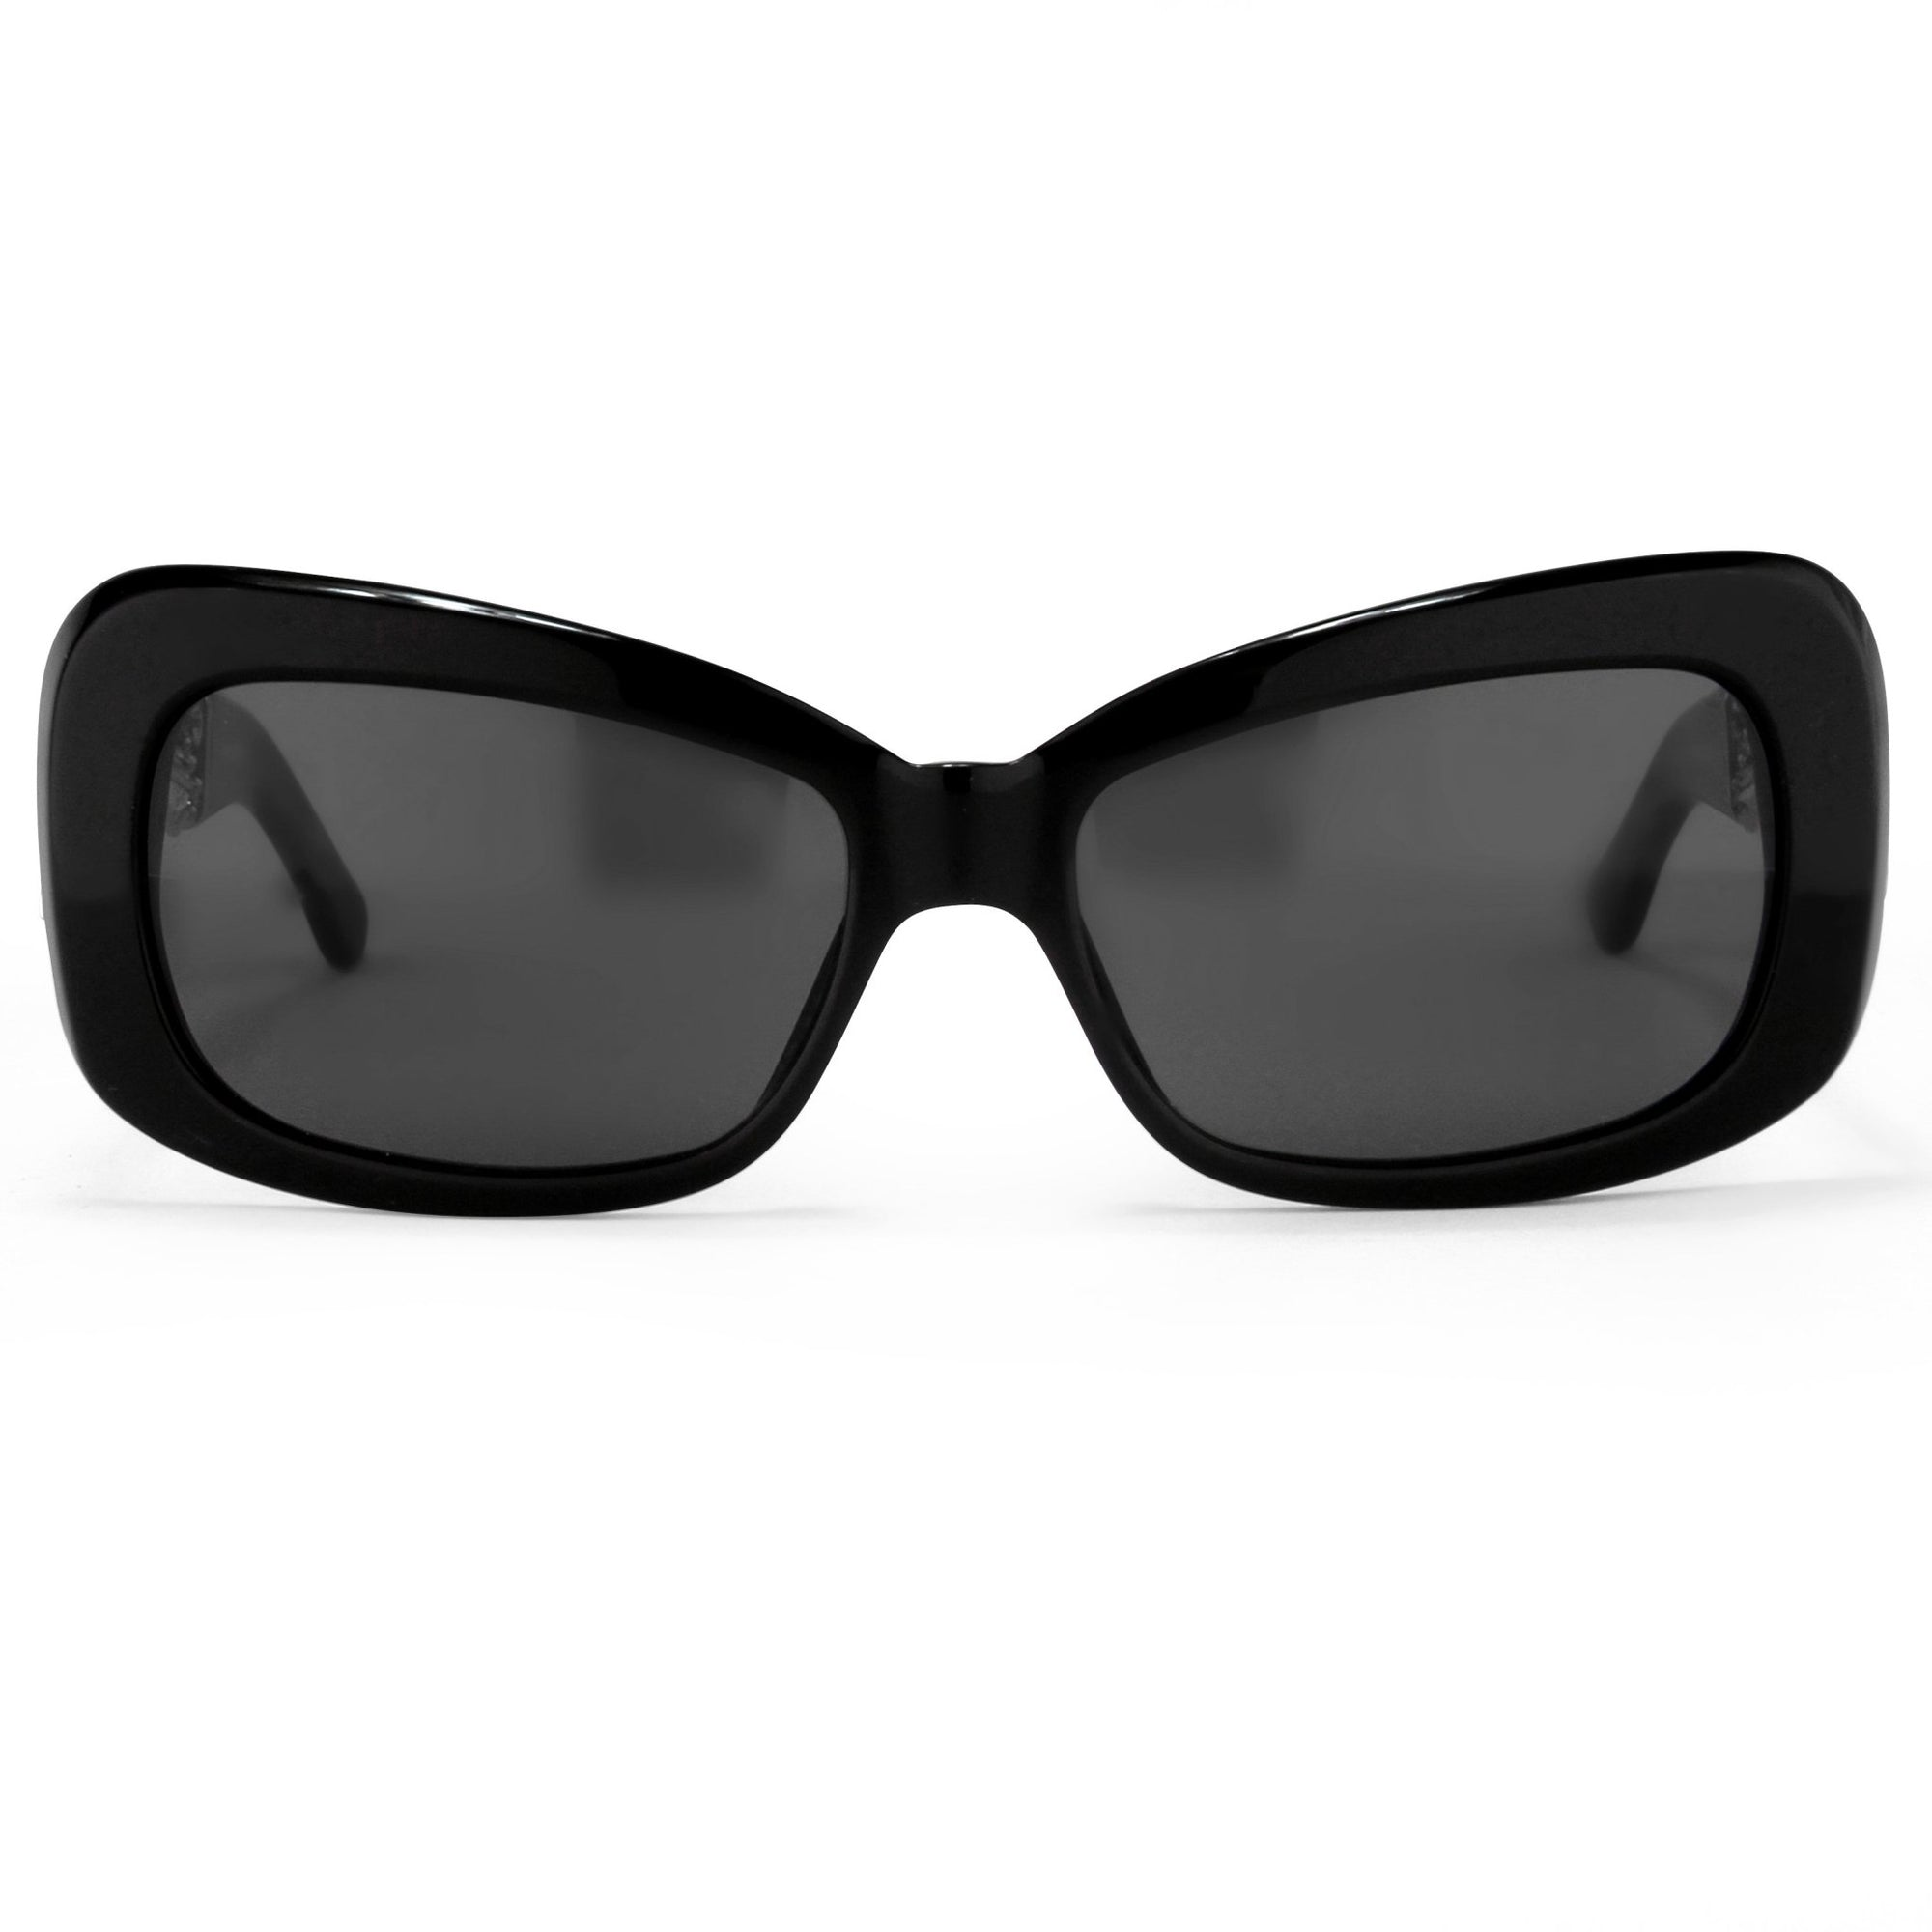 Prabal Gurung Sunglasses Women's Rectangle Black Acetate CAT3 Grey Lenses PG14C1SUN - Watches & Crystals